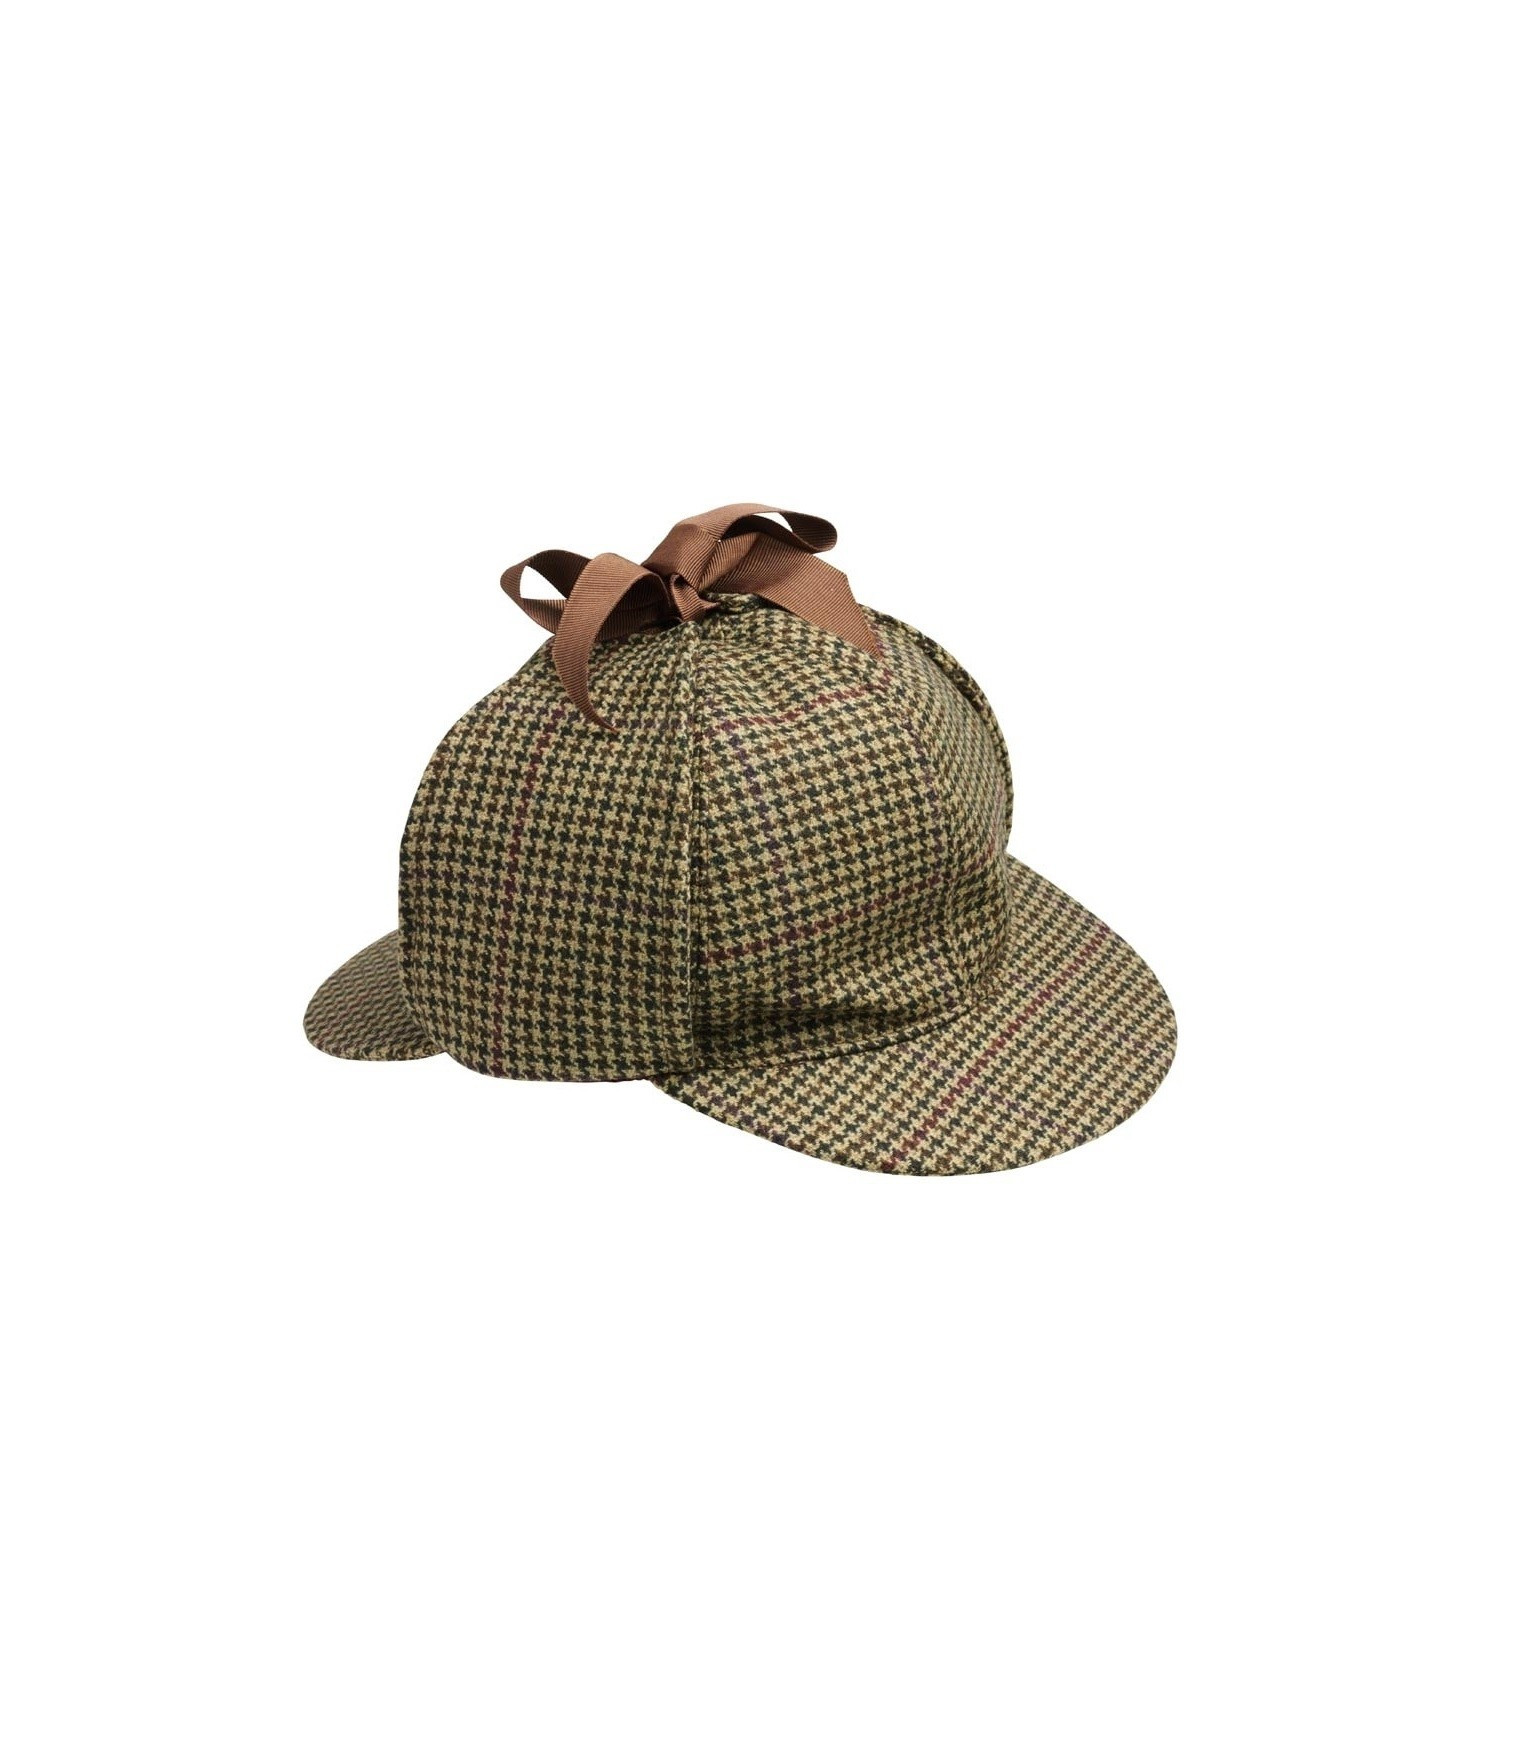 Bottes Chapeau Highland en Tweed Ainsley - 1